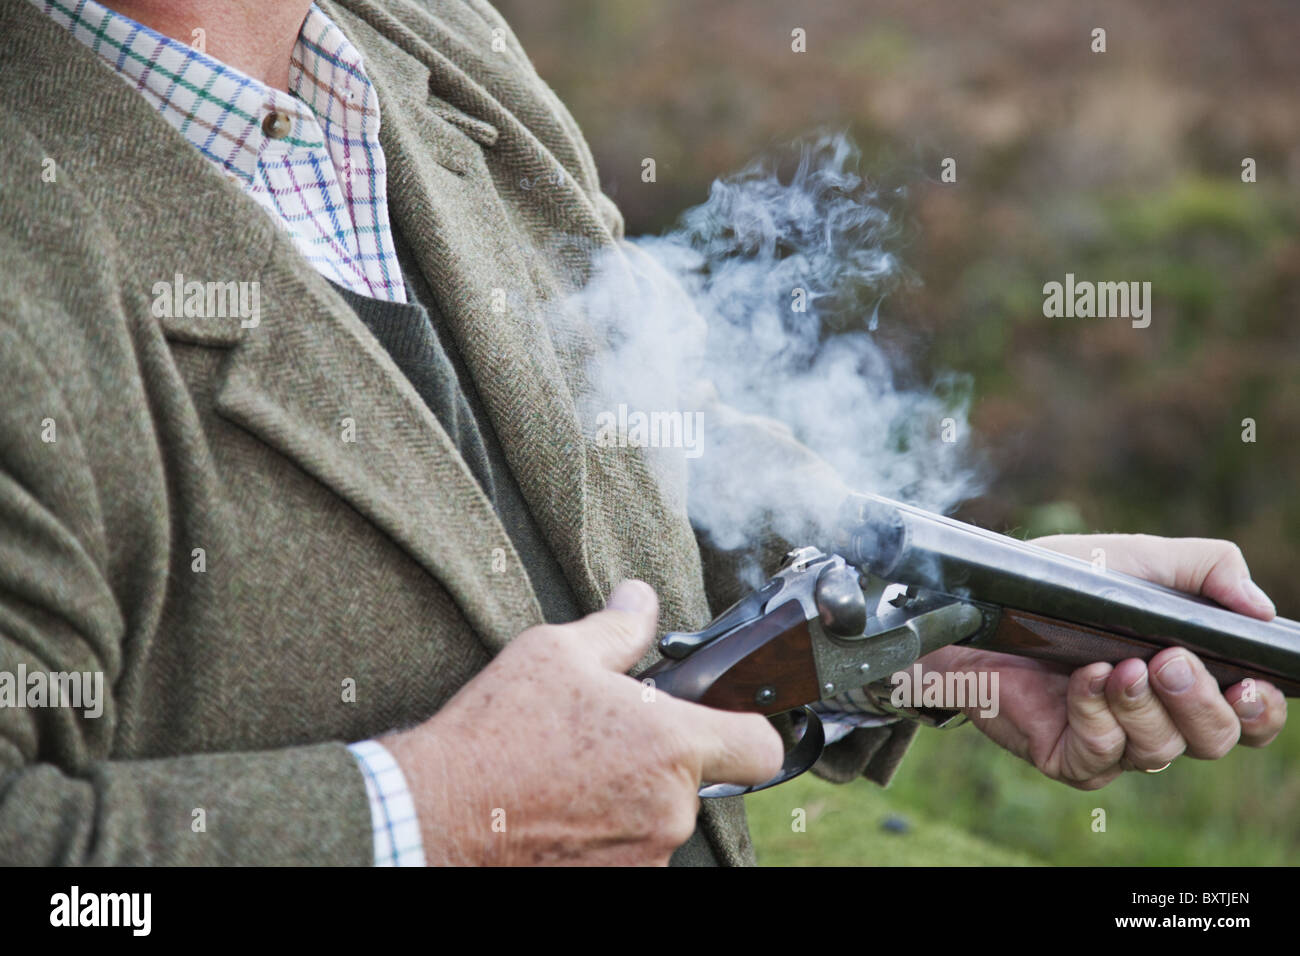 Detail photograph of well dressed man holding a shotgun during a pheasant shoot. - Stock Image